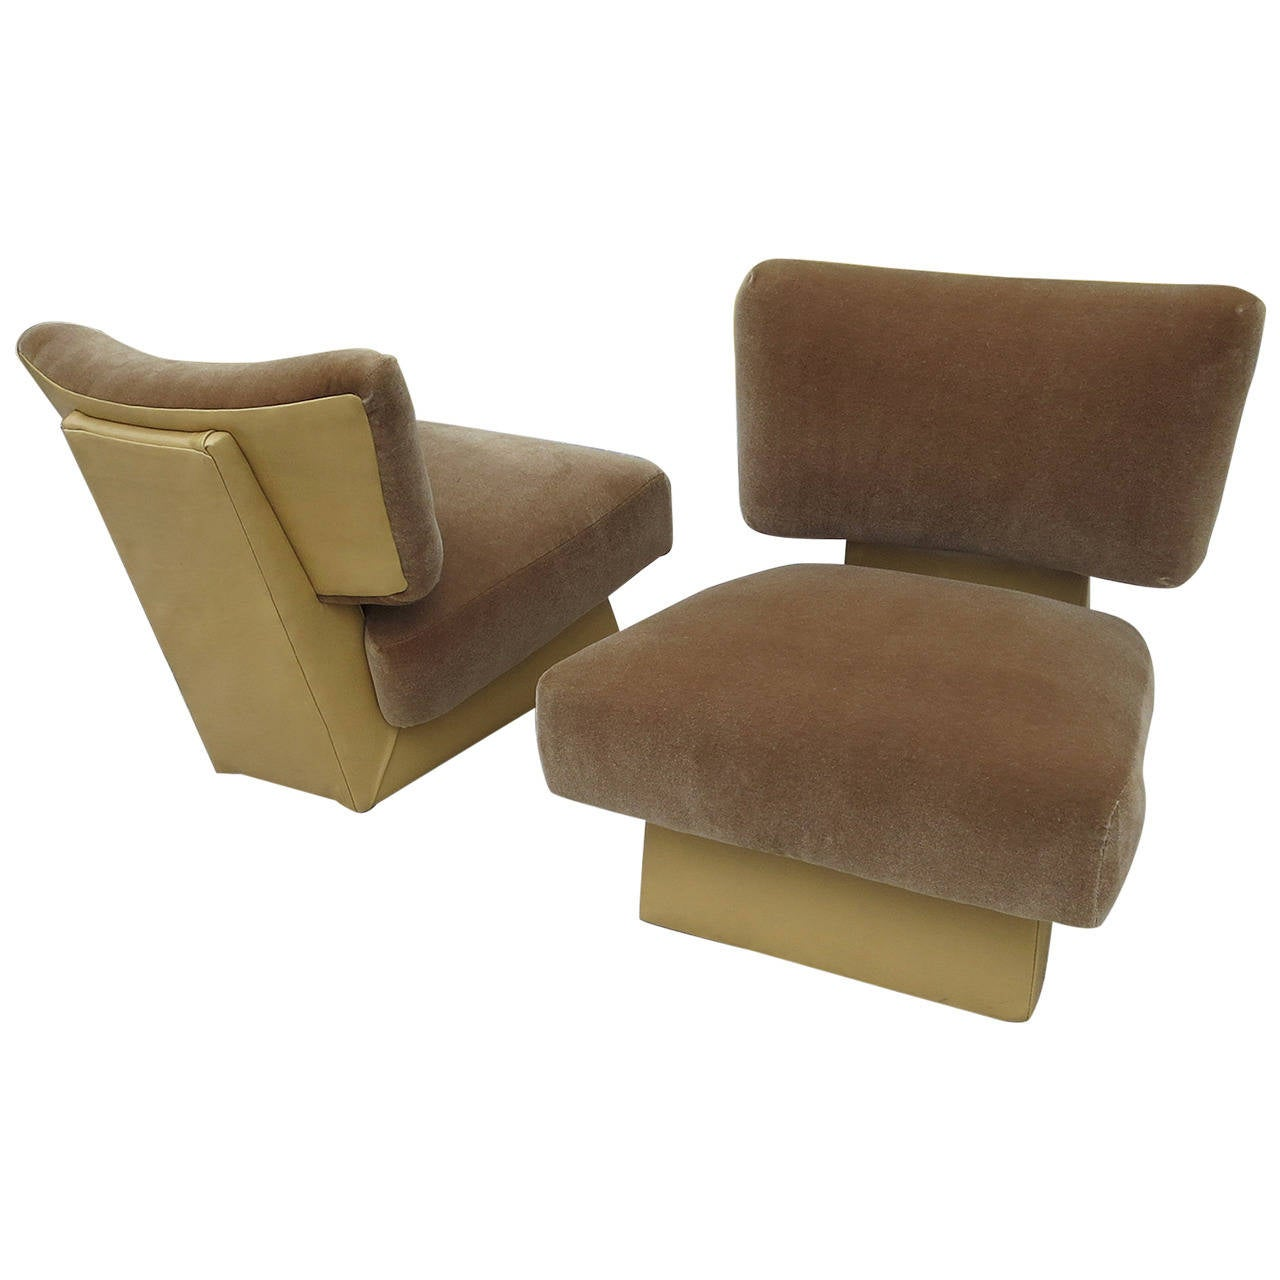 Art Deco Slipper Chairs in Leather and Mohair at 1stdibs